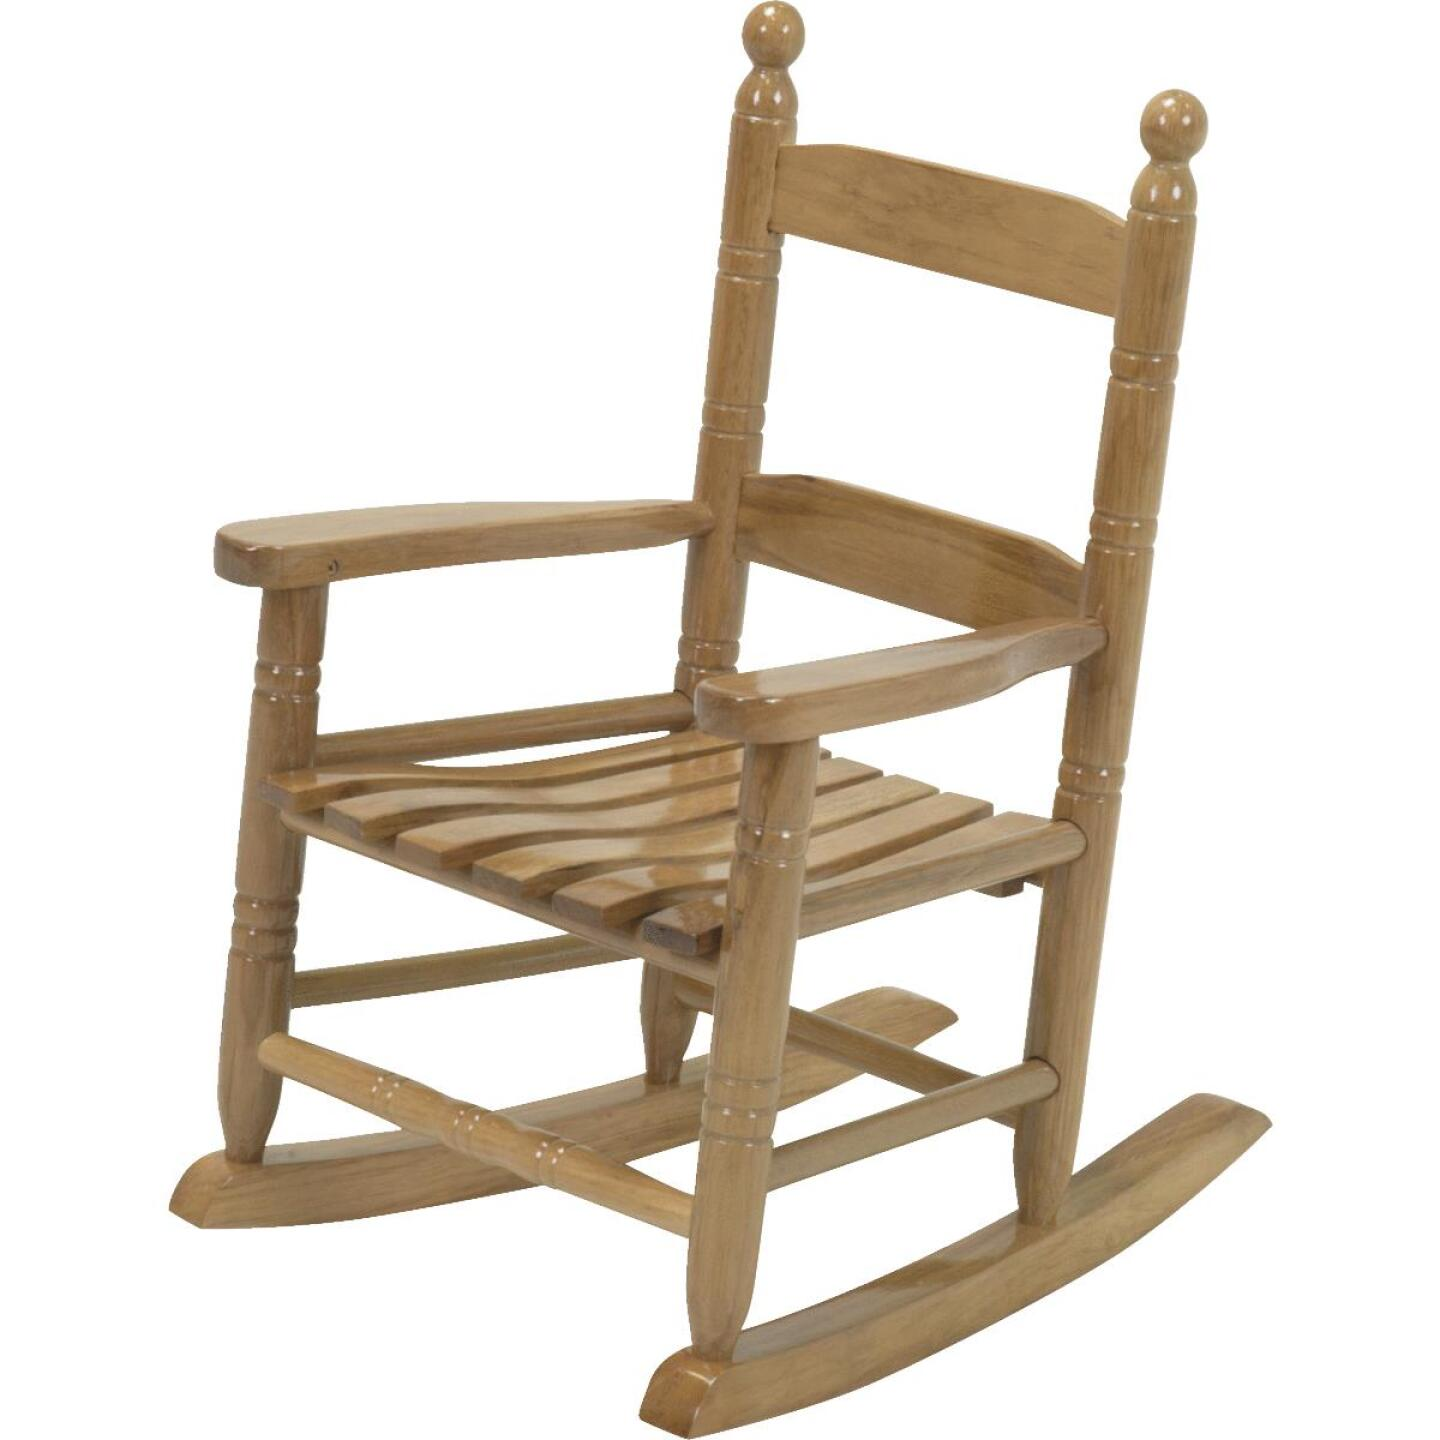 Knollwood Natural Wood Child Rocking Chair Image 2